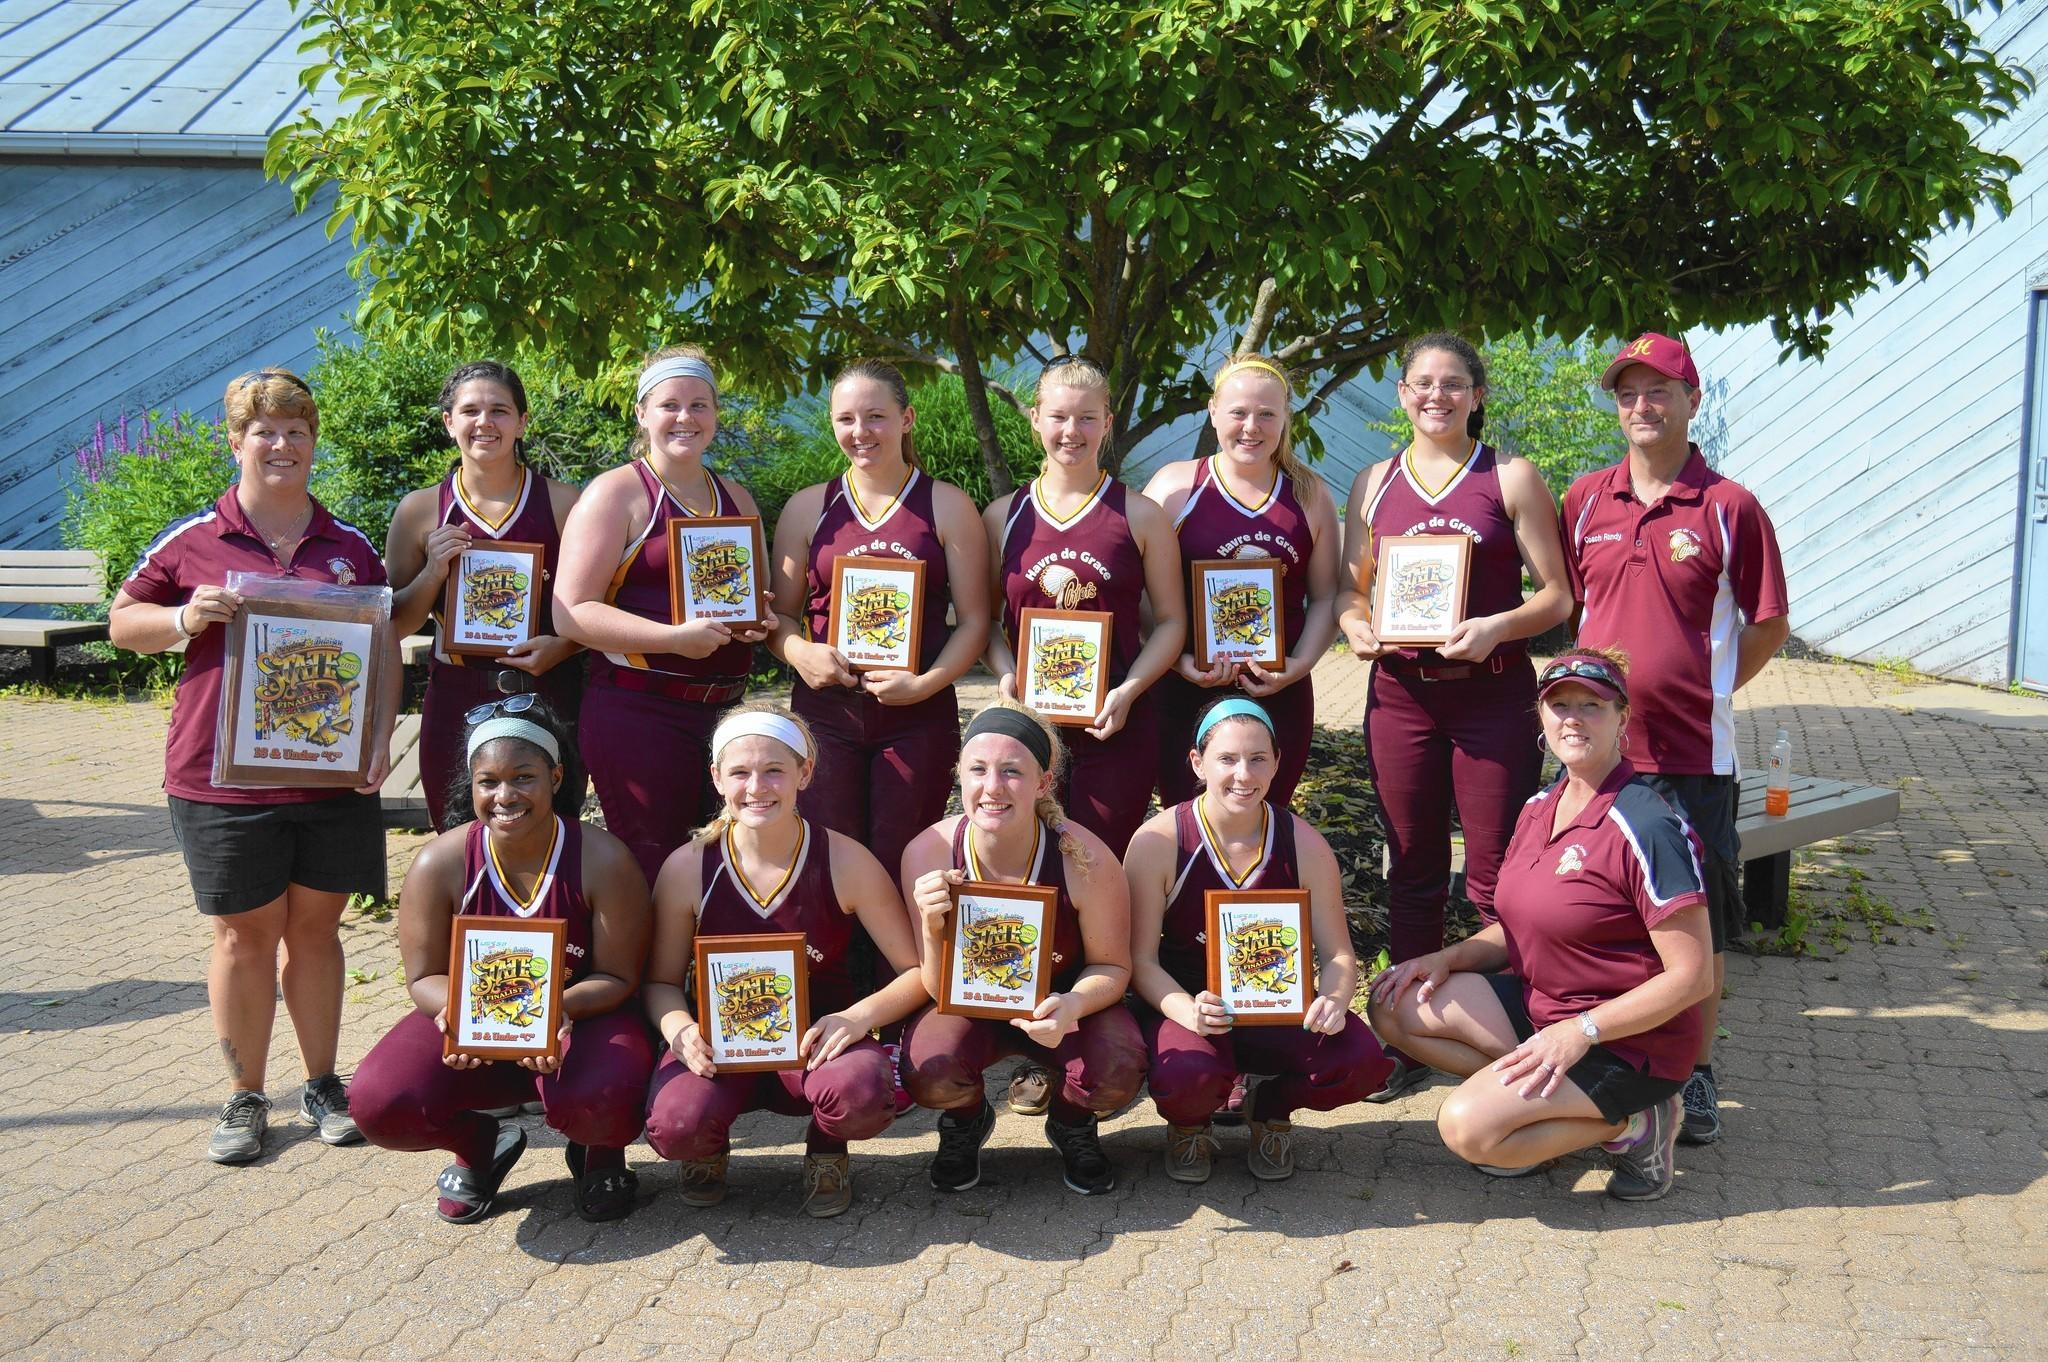 The Havre de Grace Chiefs 18U Girls Fastpitch Softball team placed second in the 2014 Maryland/Delaware Class C State Tournament last weekend. The Chiefs had a 5-4 come-from-behind win over the Forest Hill Heat and a 5-1 win over the Freedom Firebirds. Both teams had beaten the Chiefs in previous tournaments. In the state final, the Chiefs just couldn't get the hit when they needed it, losing to the CFR Squeeze, 2-0. Pictured, front row from left, are Kayla Vaughan, Sarah Scott, Hailey Bethke, Abby Lilly and coach Rayma McRoberts; and back row from left, coach Robyn Glassman, Lucy Brooks, Ashley Algard, Annelise Beer, Kennan Glassman, Sophie Daghir, Emily Brooks and manager Randy McRoberts.